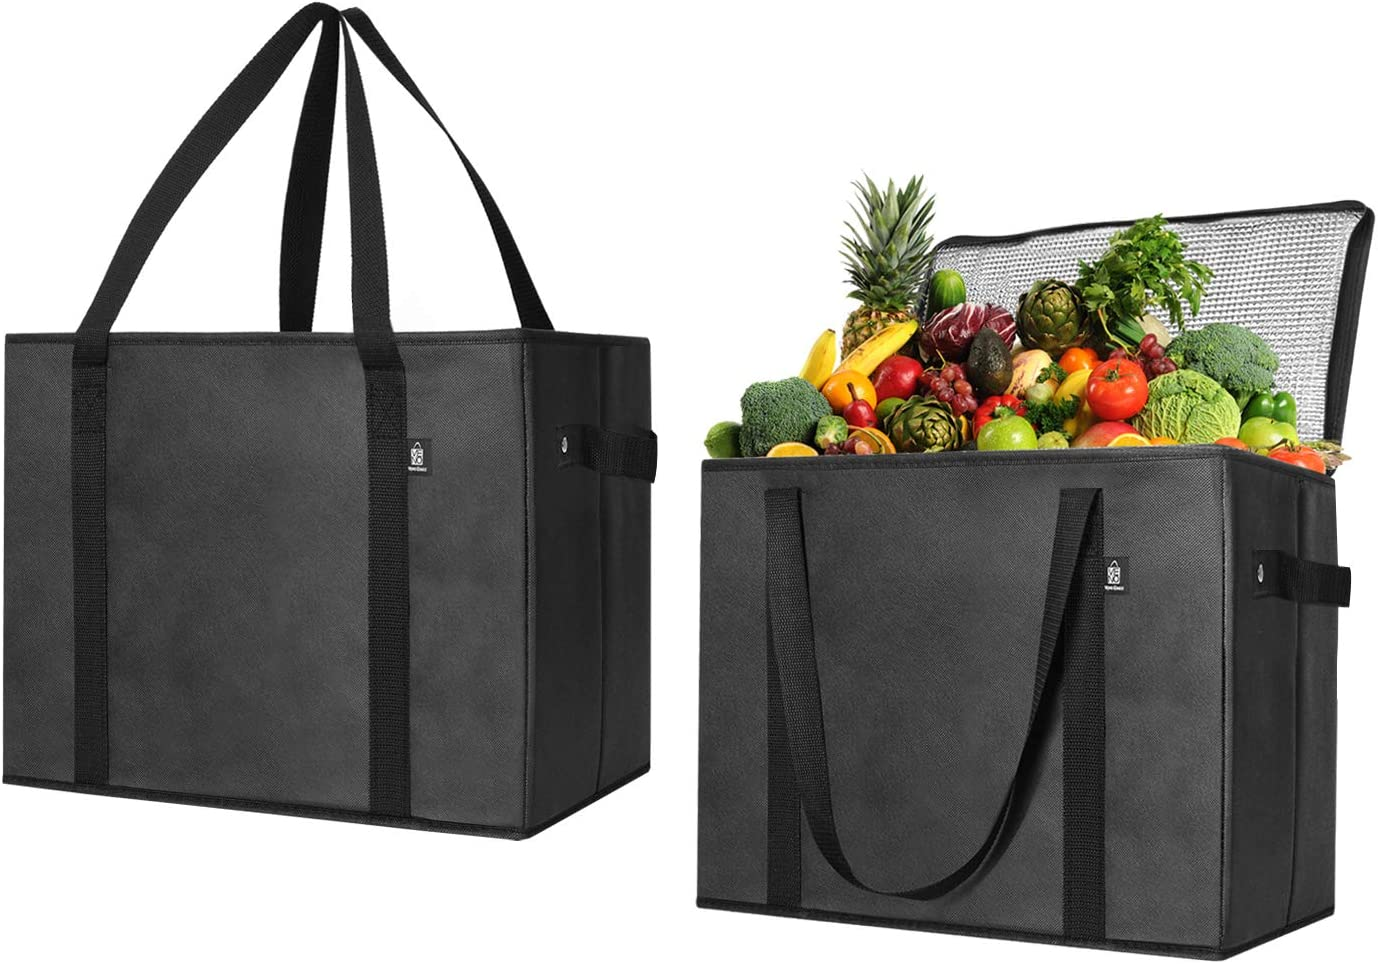 VENO Reusable Insulated Grocery Shopping Bags, 2 X Large Collapsible Insulated zippered Cooler with Reinforced Bottoms, Made of Recycled Material (Pack of 2)